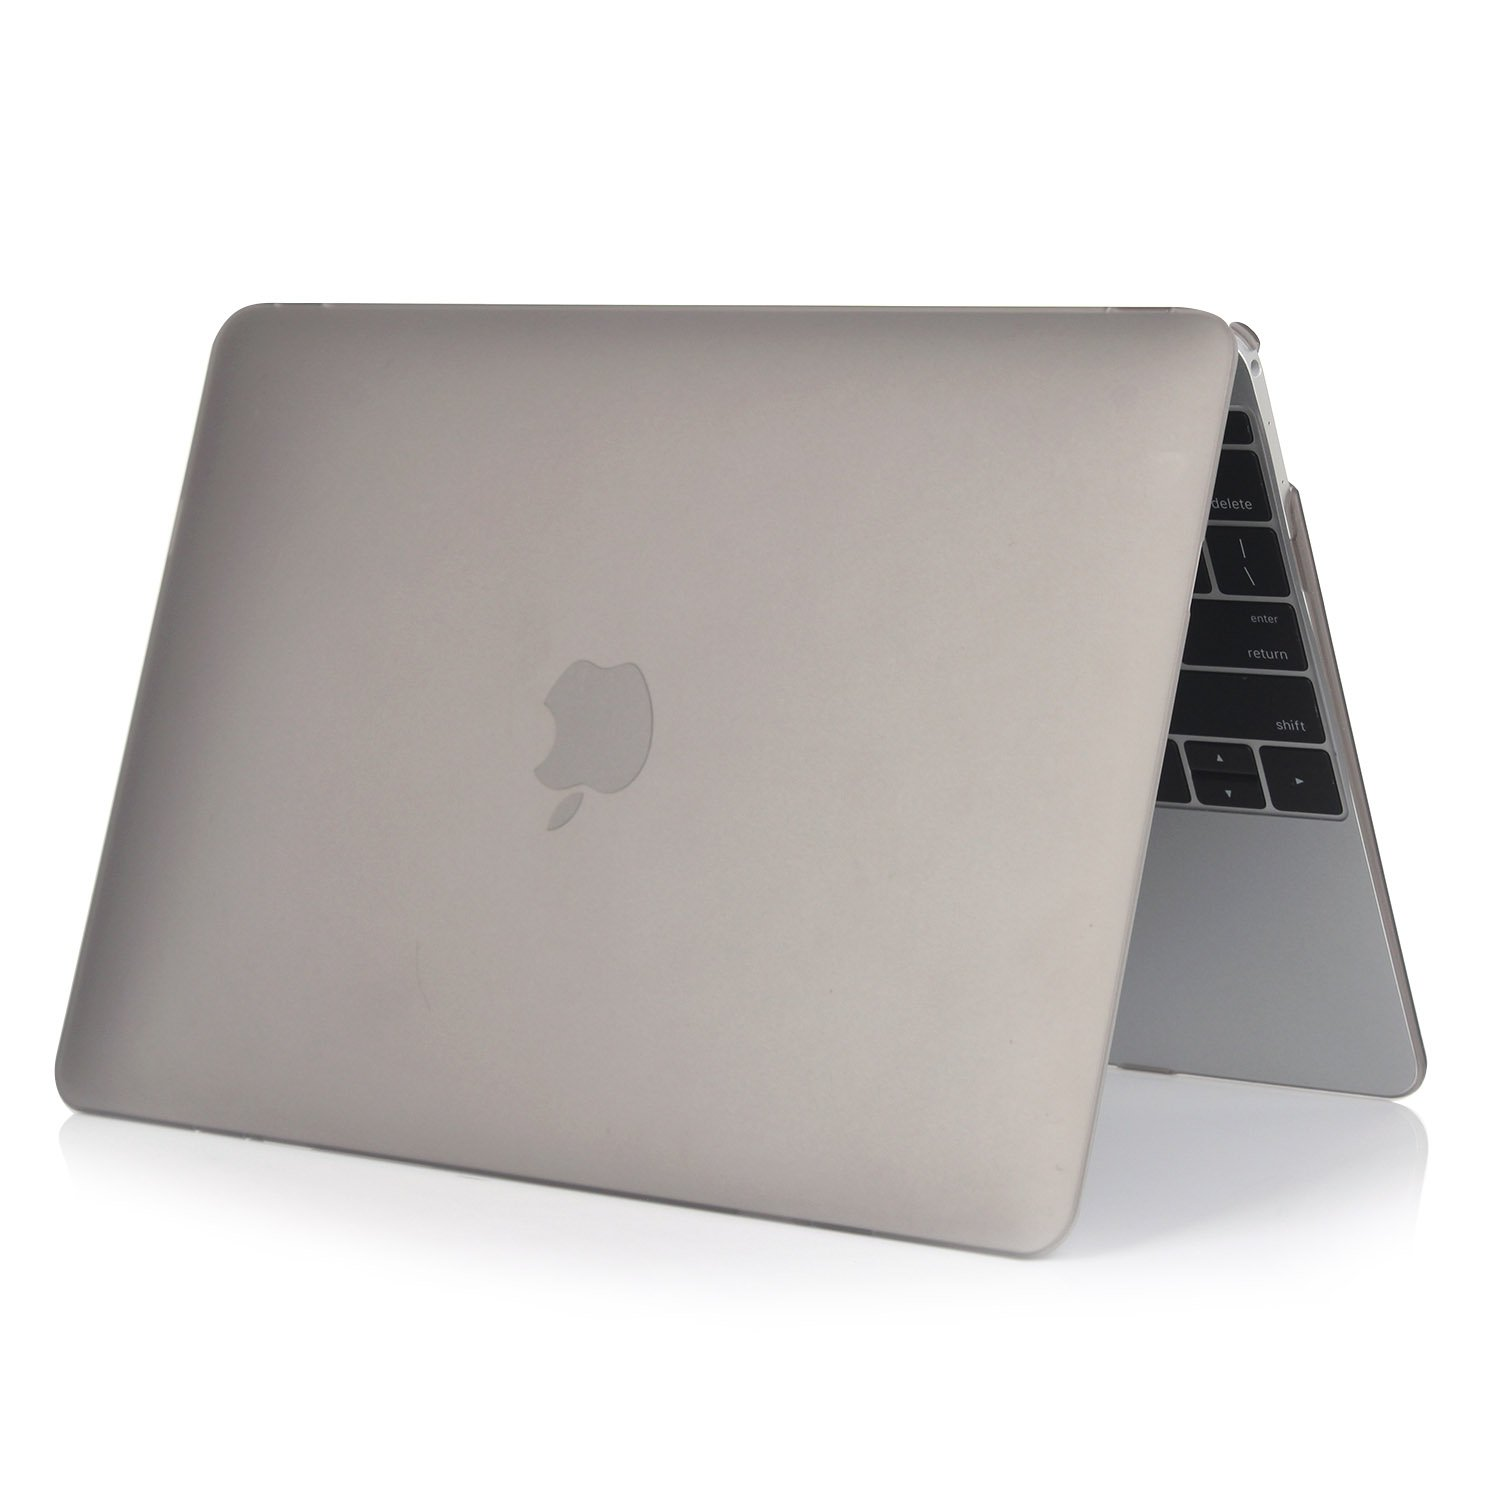 """13.3"""" MOSISO TRANSPARENT BLACK Matte Case for MacBook Air Laptop 9 COLORS FAST FREE SHIPPING USA"""